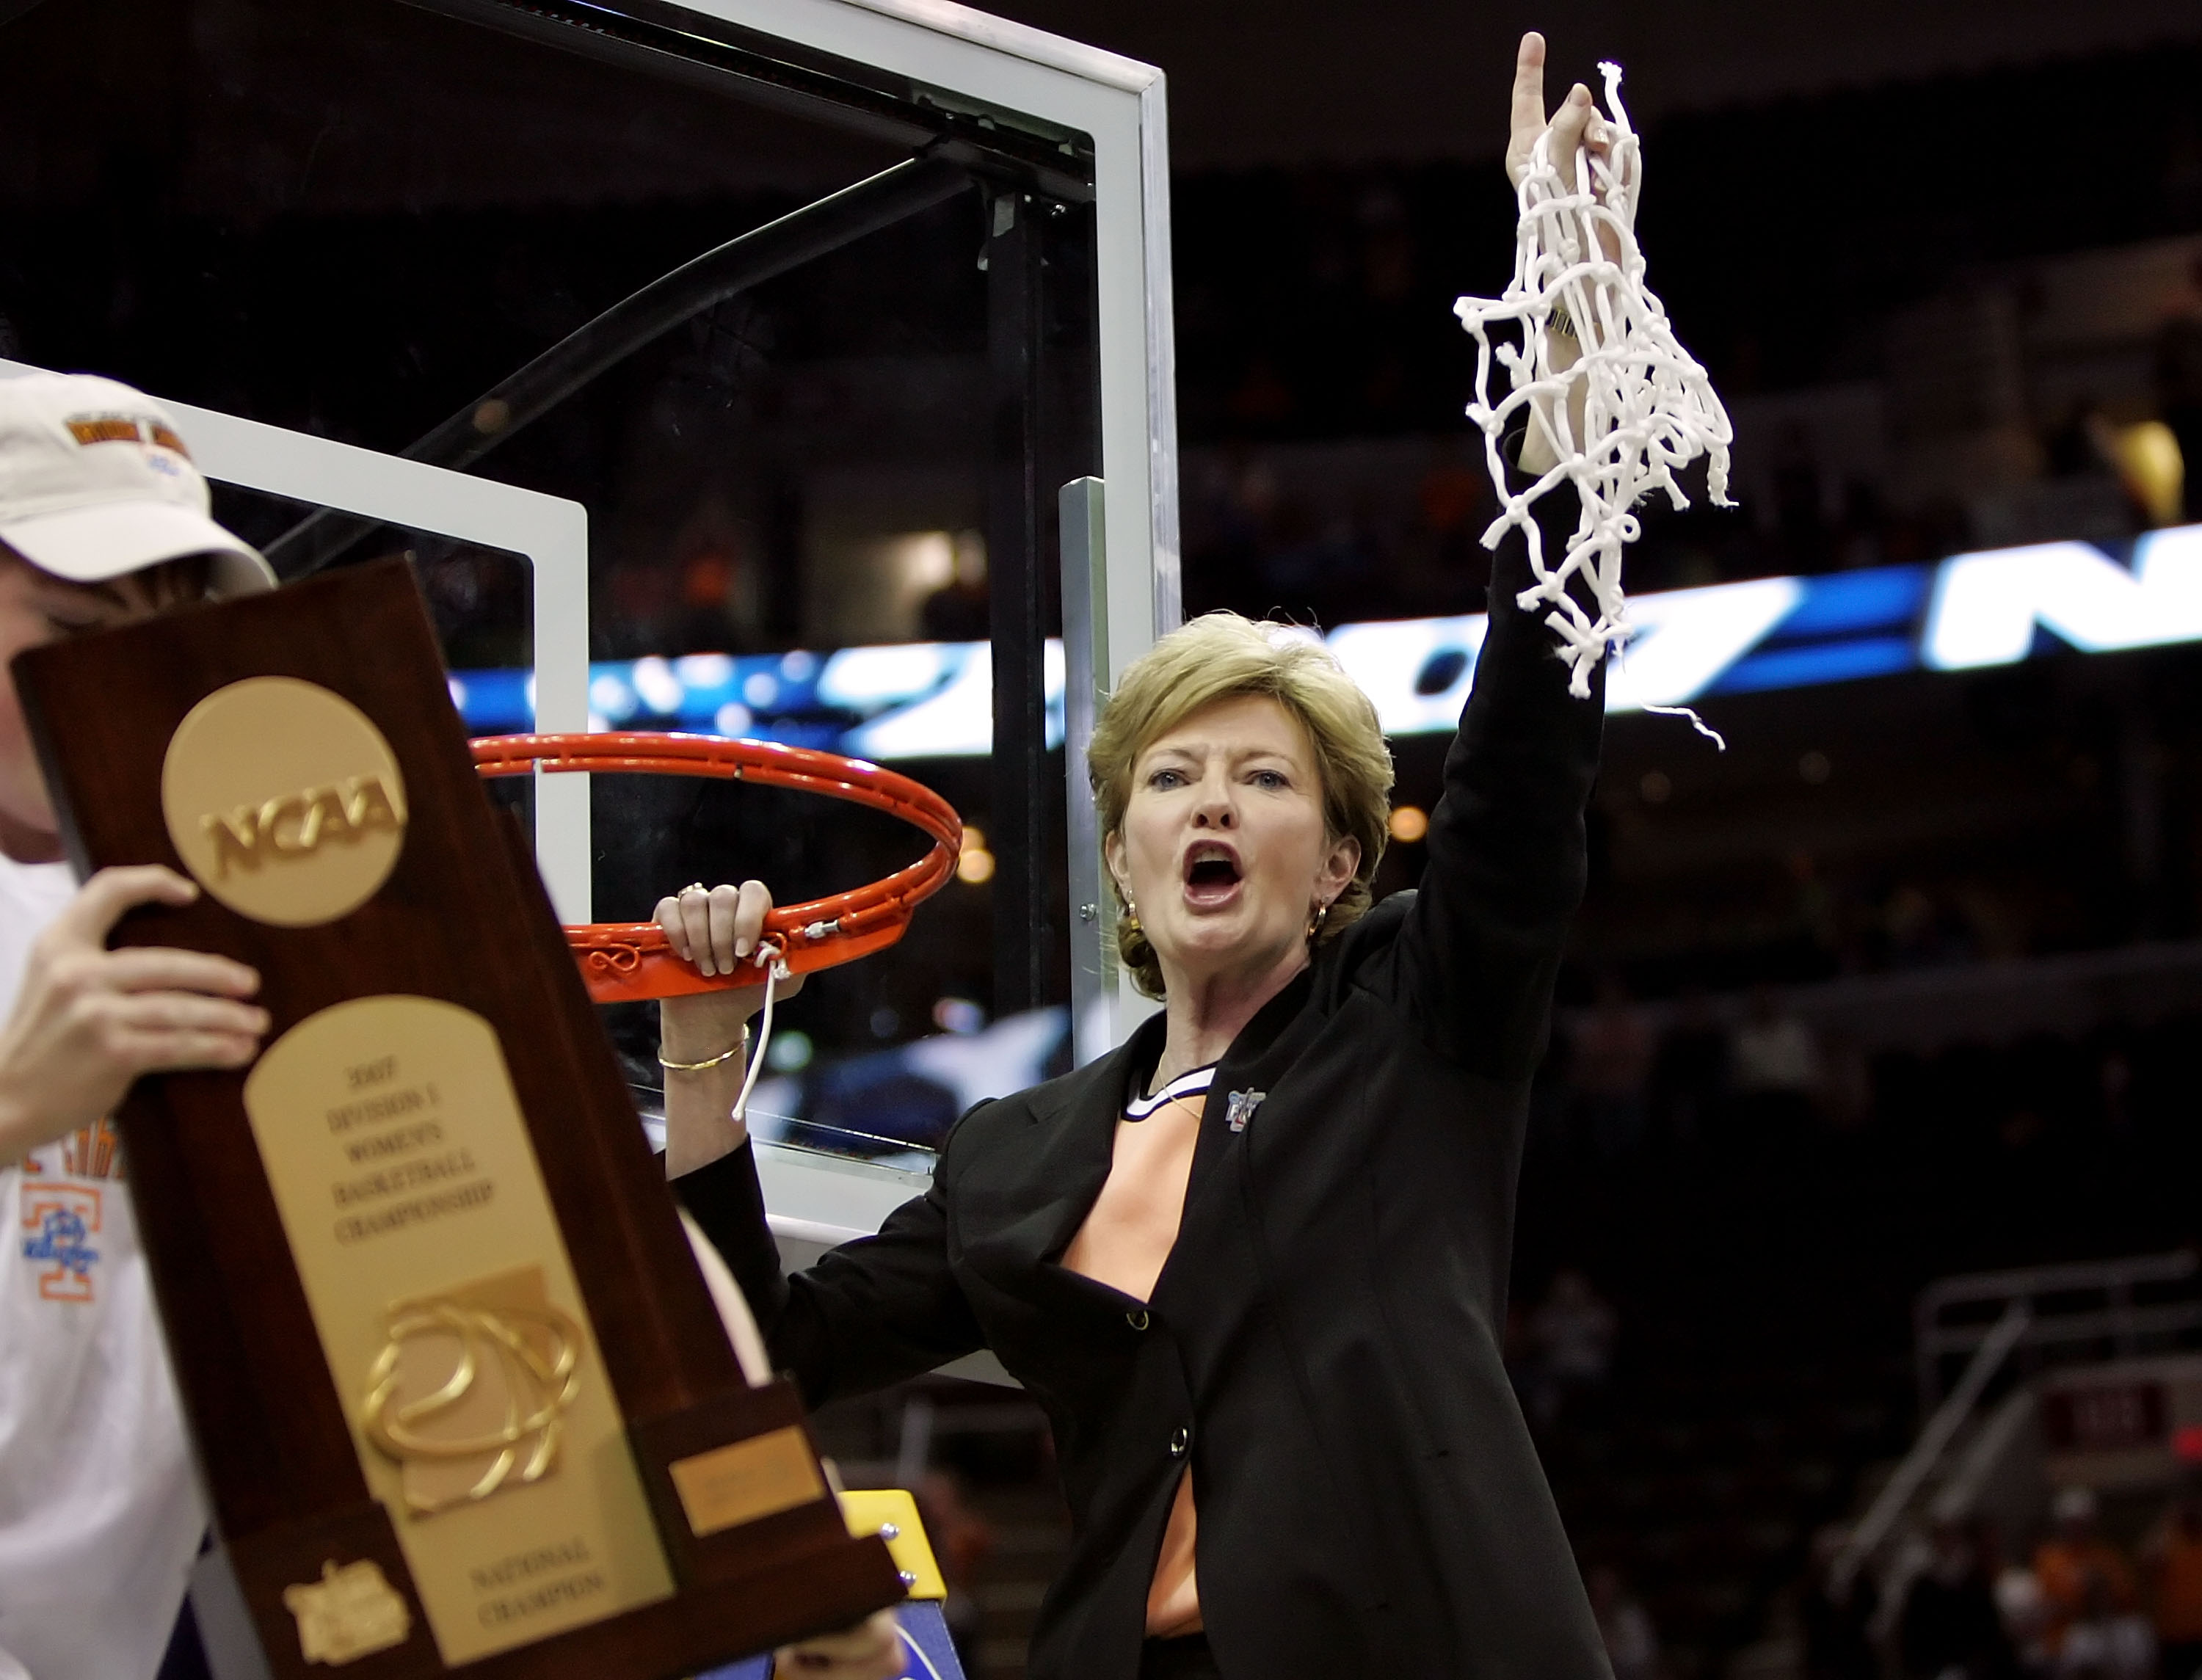 Pat Summitt after winning the 2007 National Championship. (Getty)